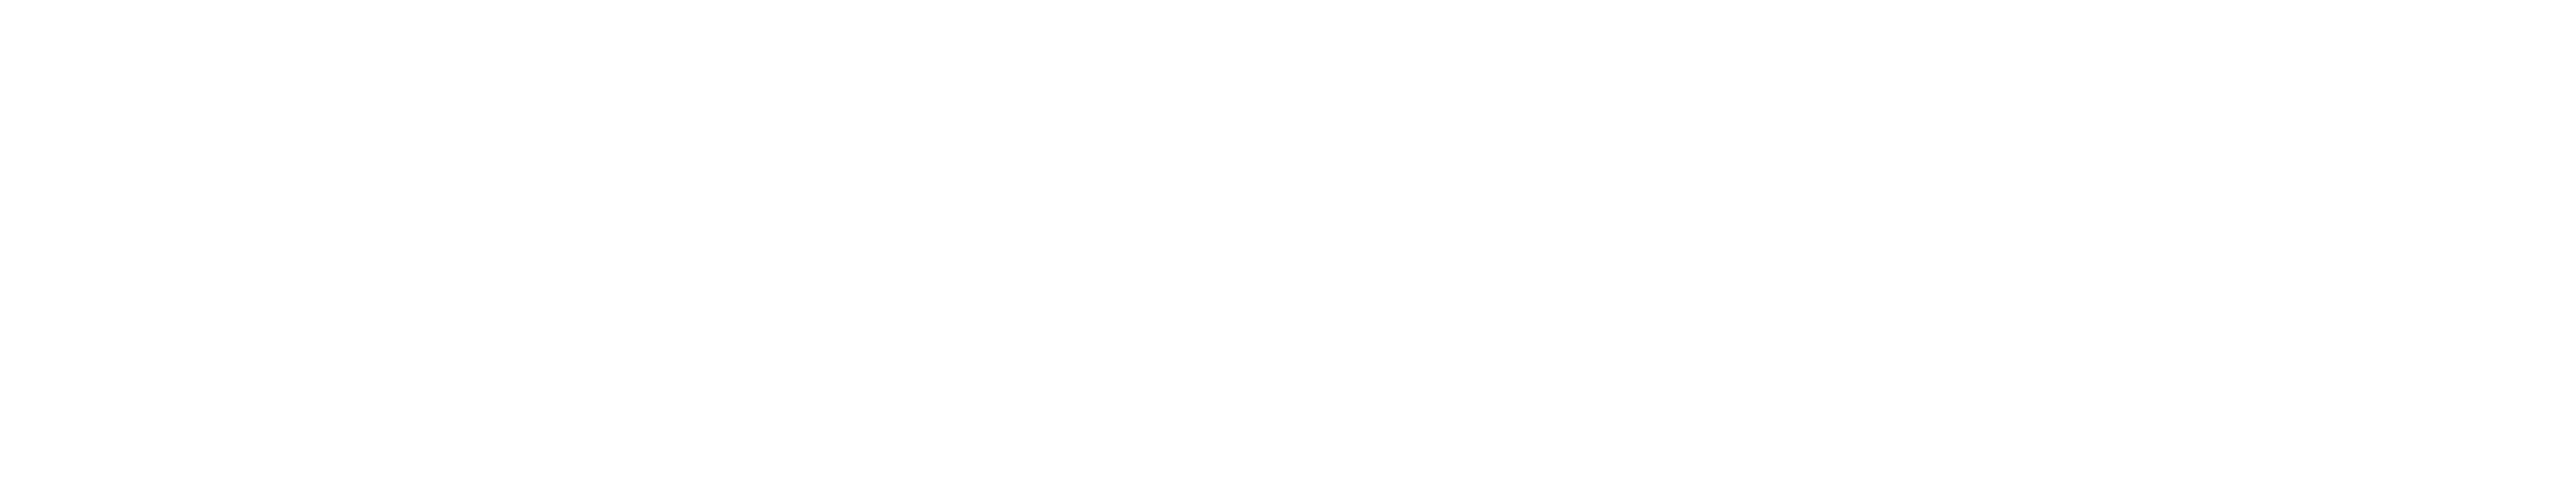 san diego vegan meal delivery open soon